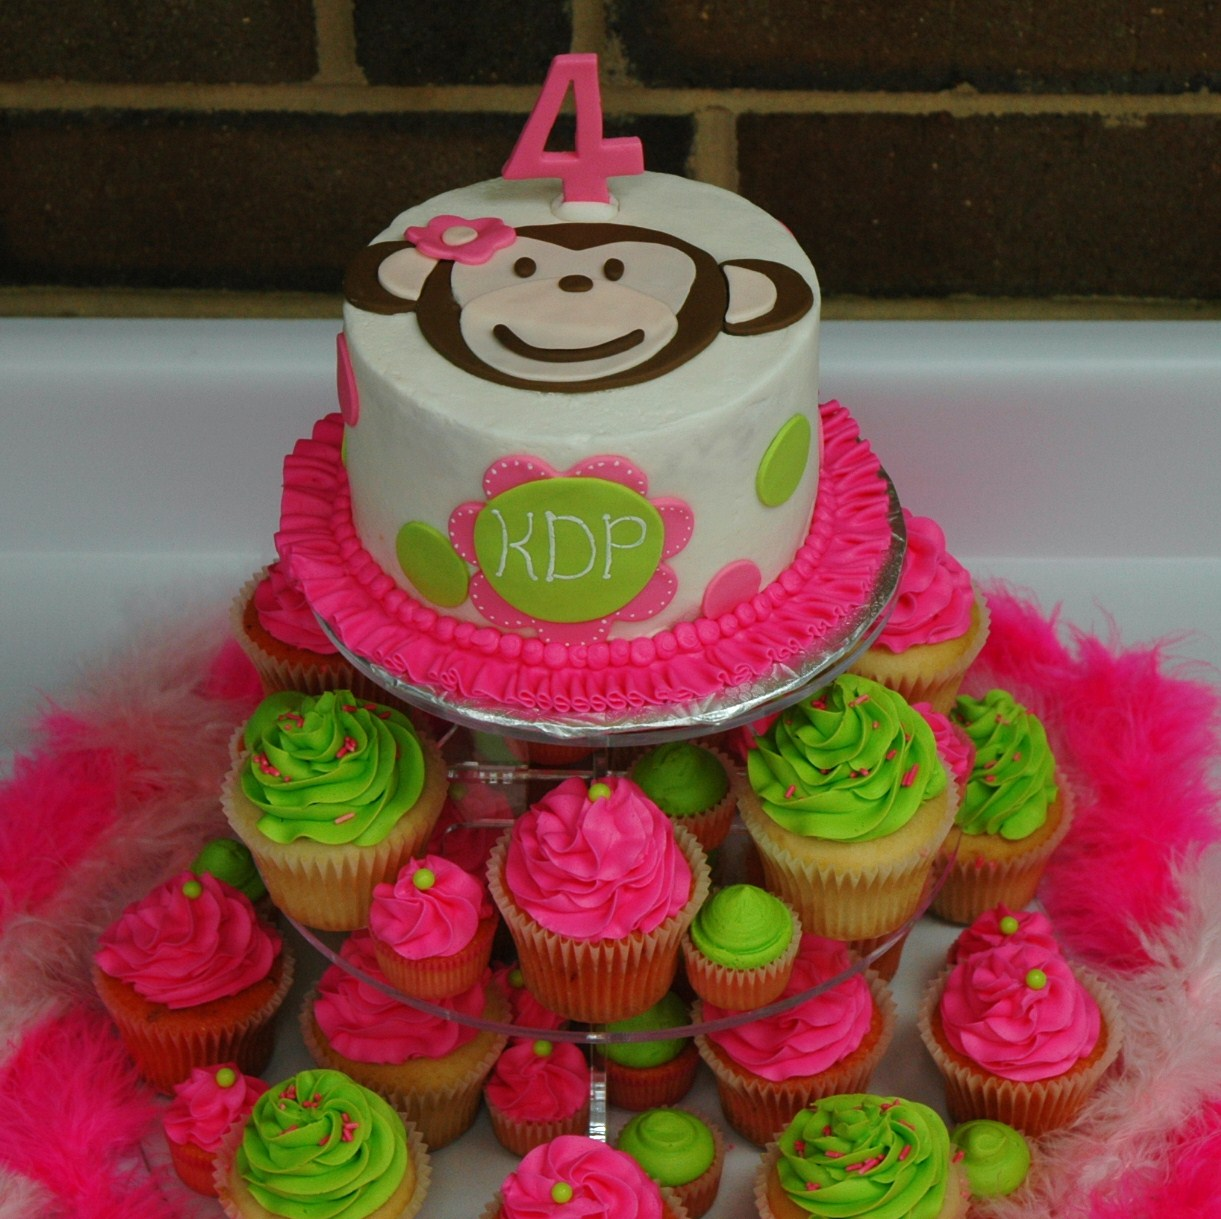 Monkey love cupcakes - photo#27